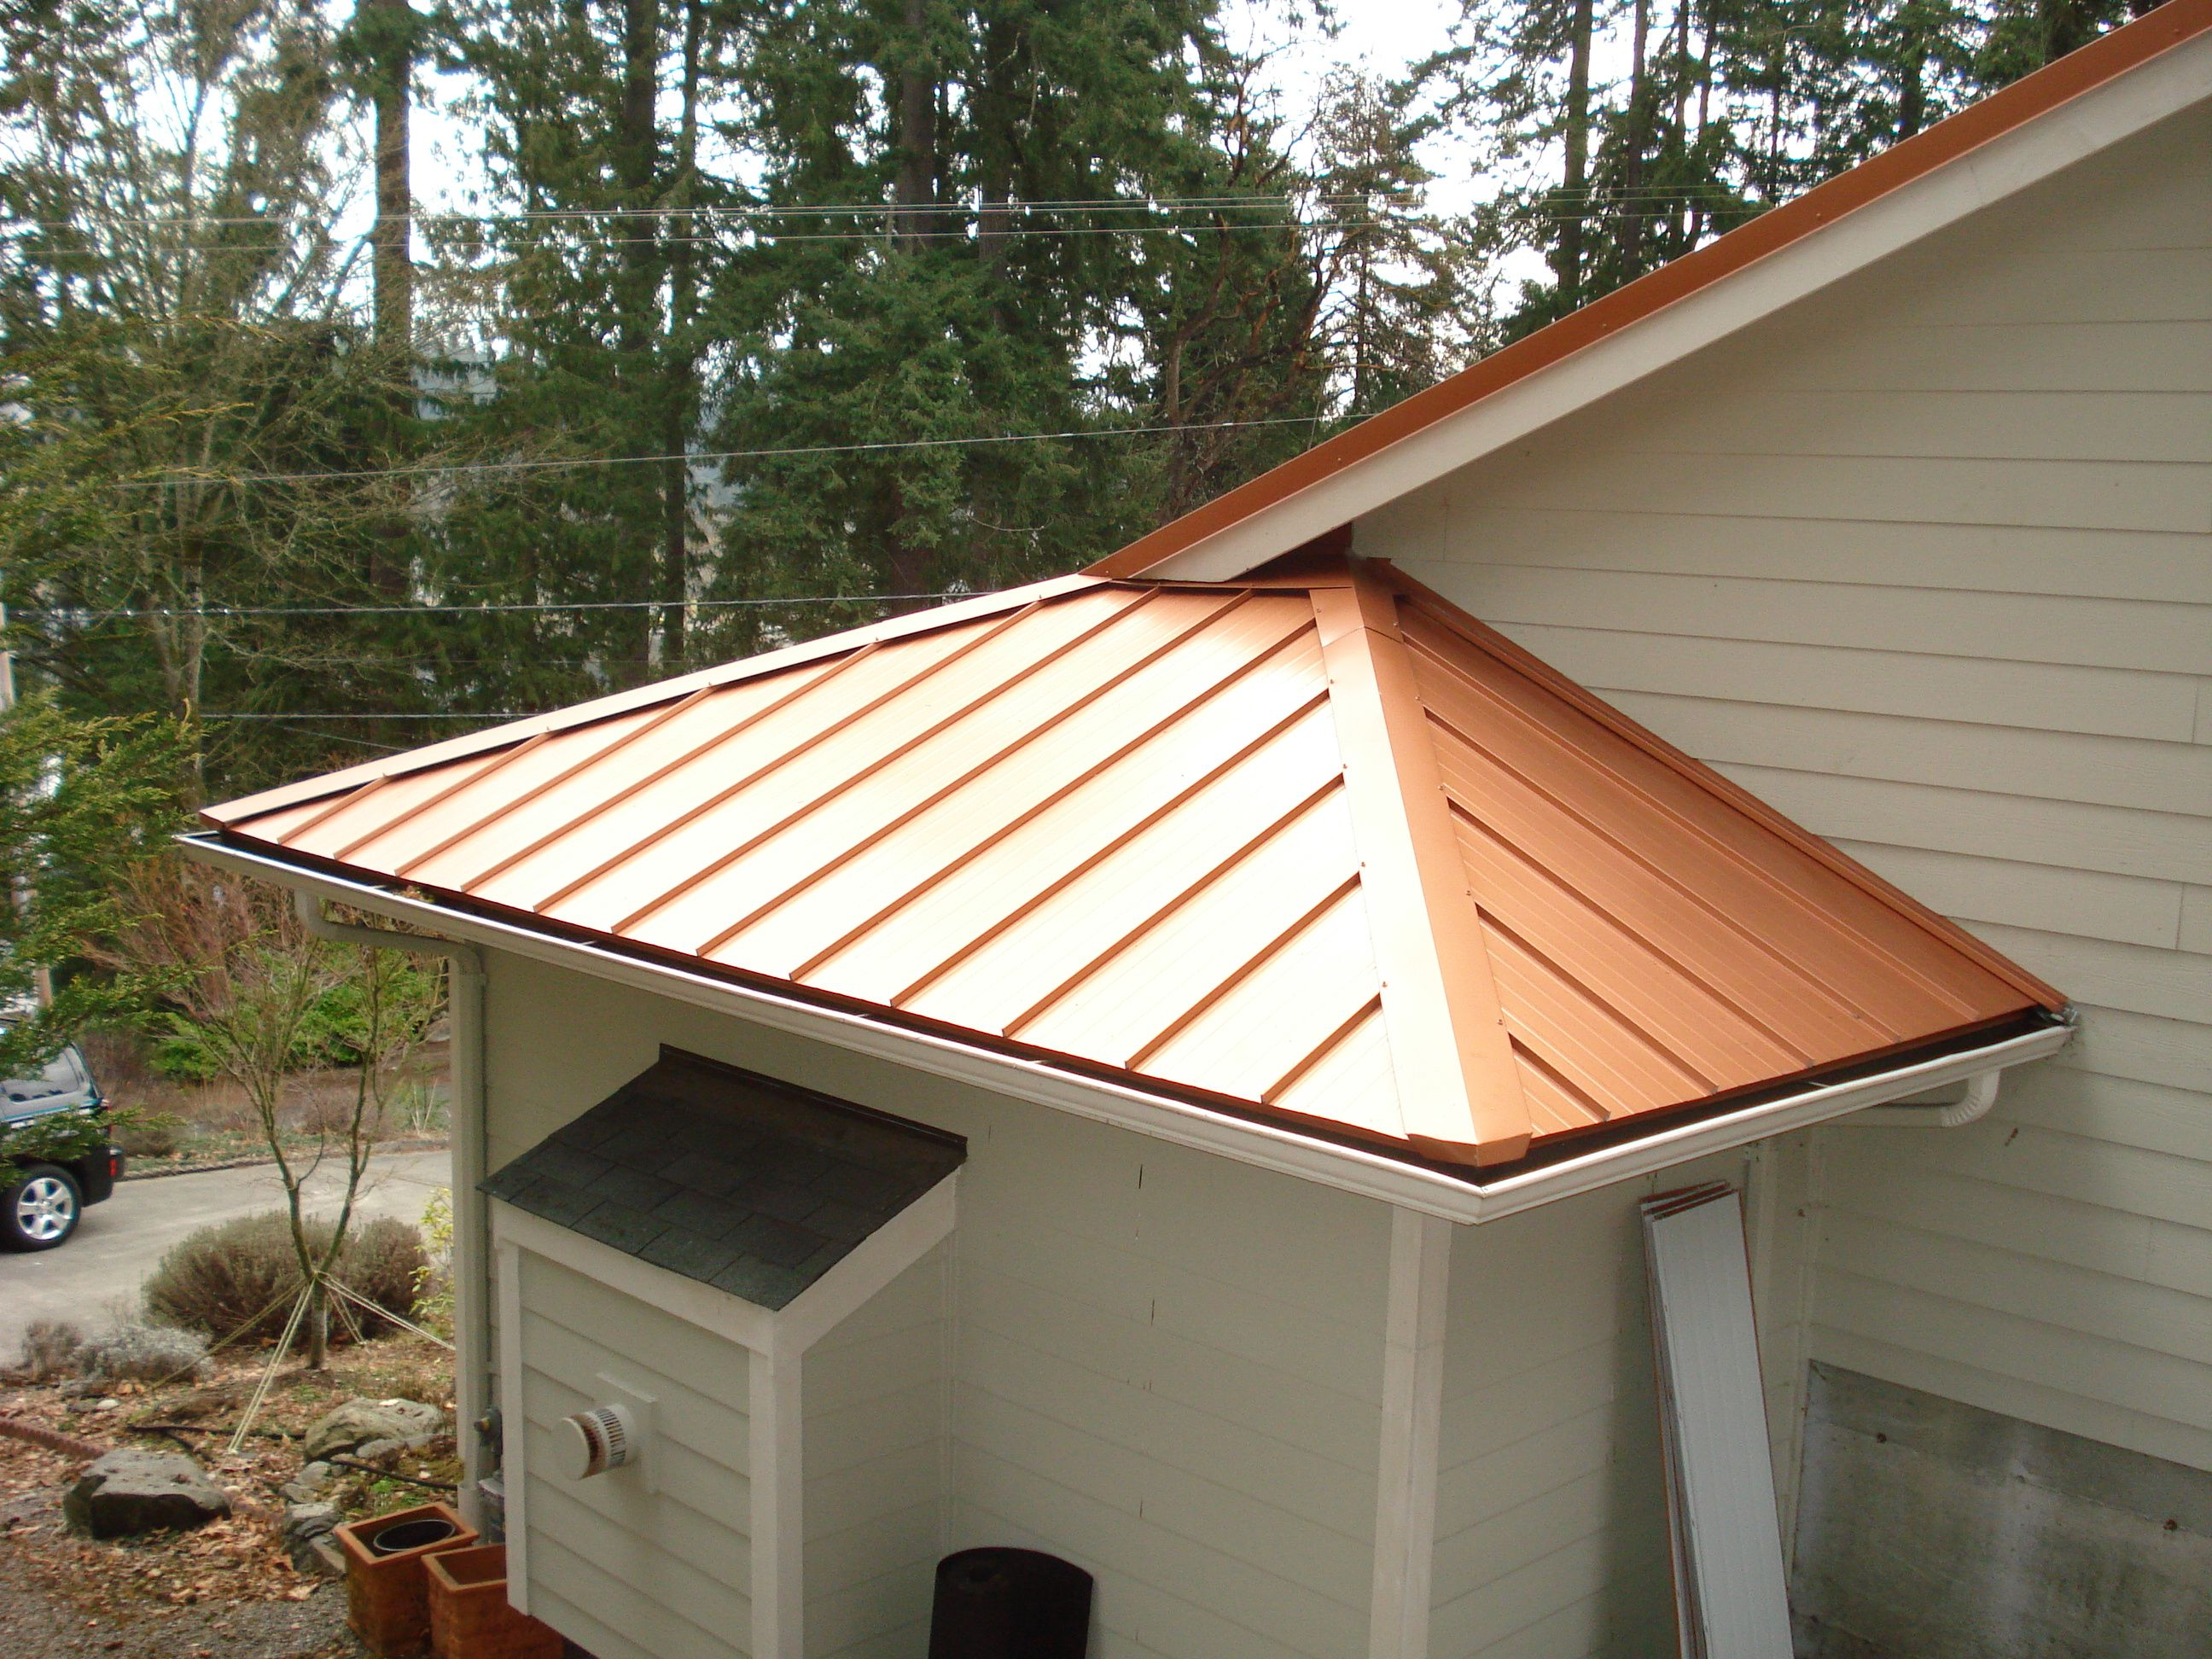 Best Copper Penny Metal Roofing Photos Skyline 114 16 Copper 400 x 300